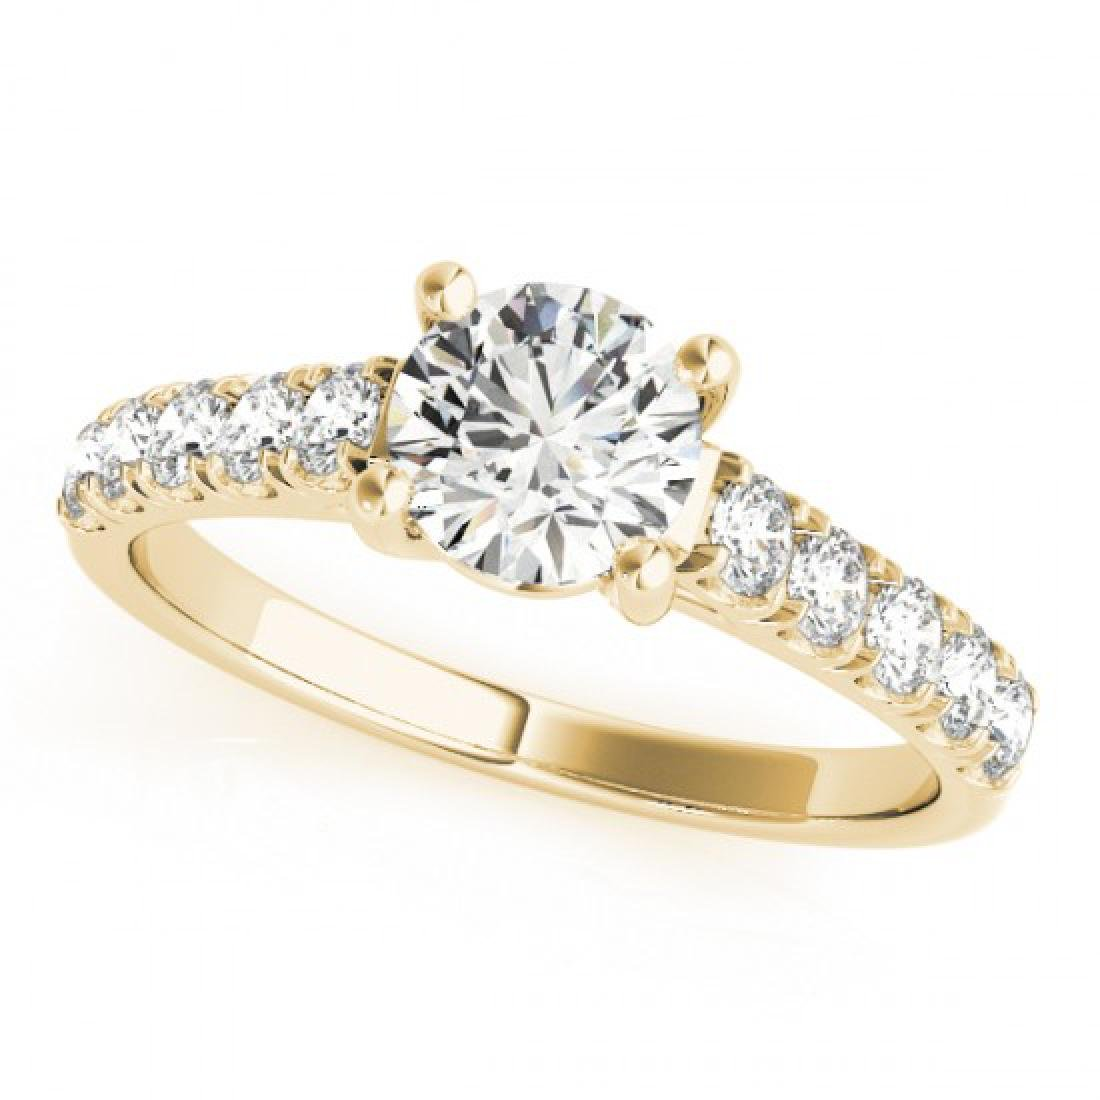 2.1 CTW Certified VS/SI Diamond Solitaire Ring 14K